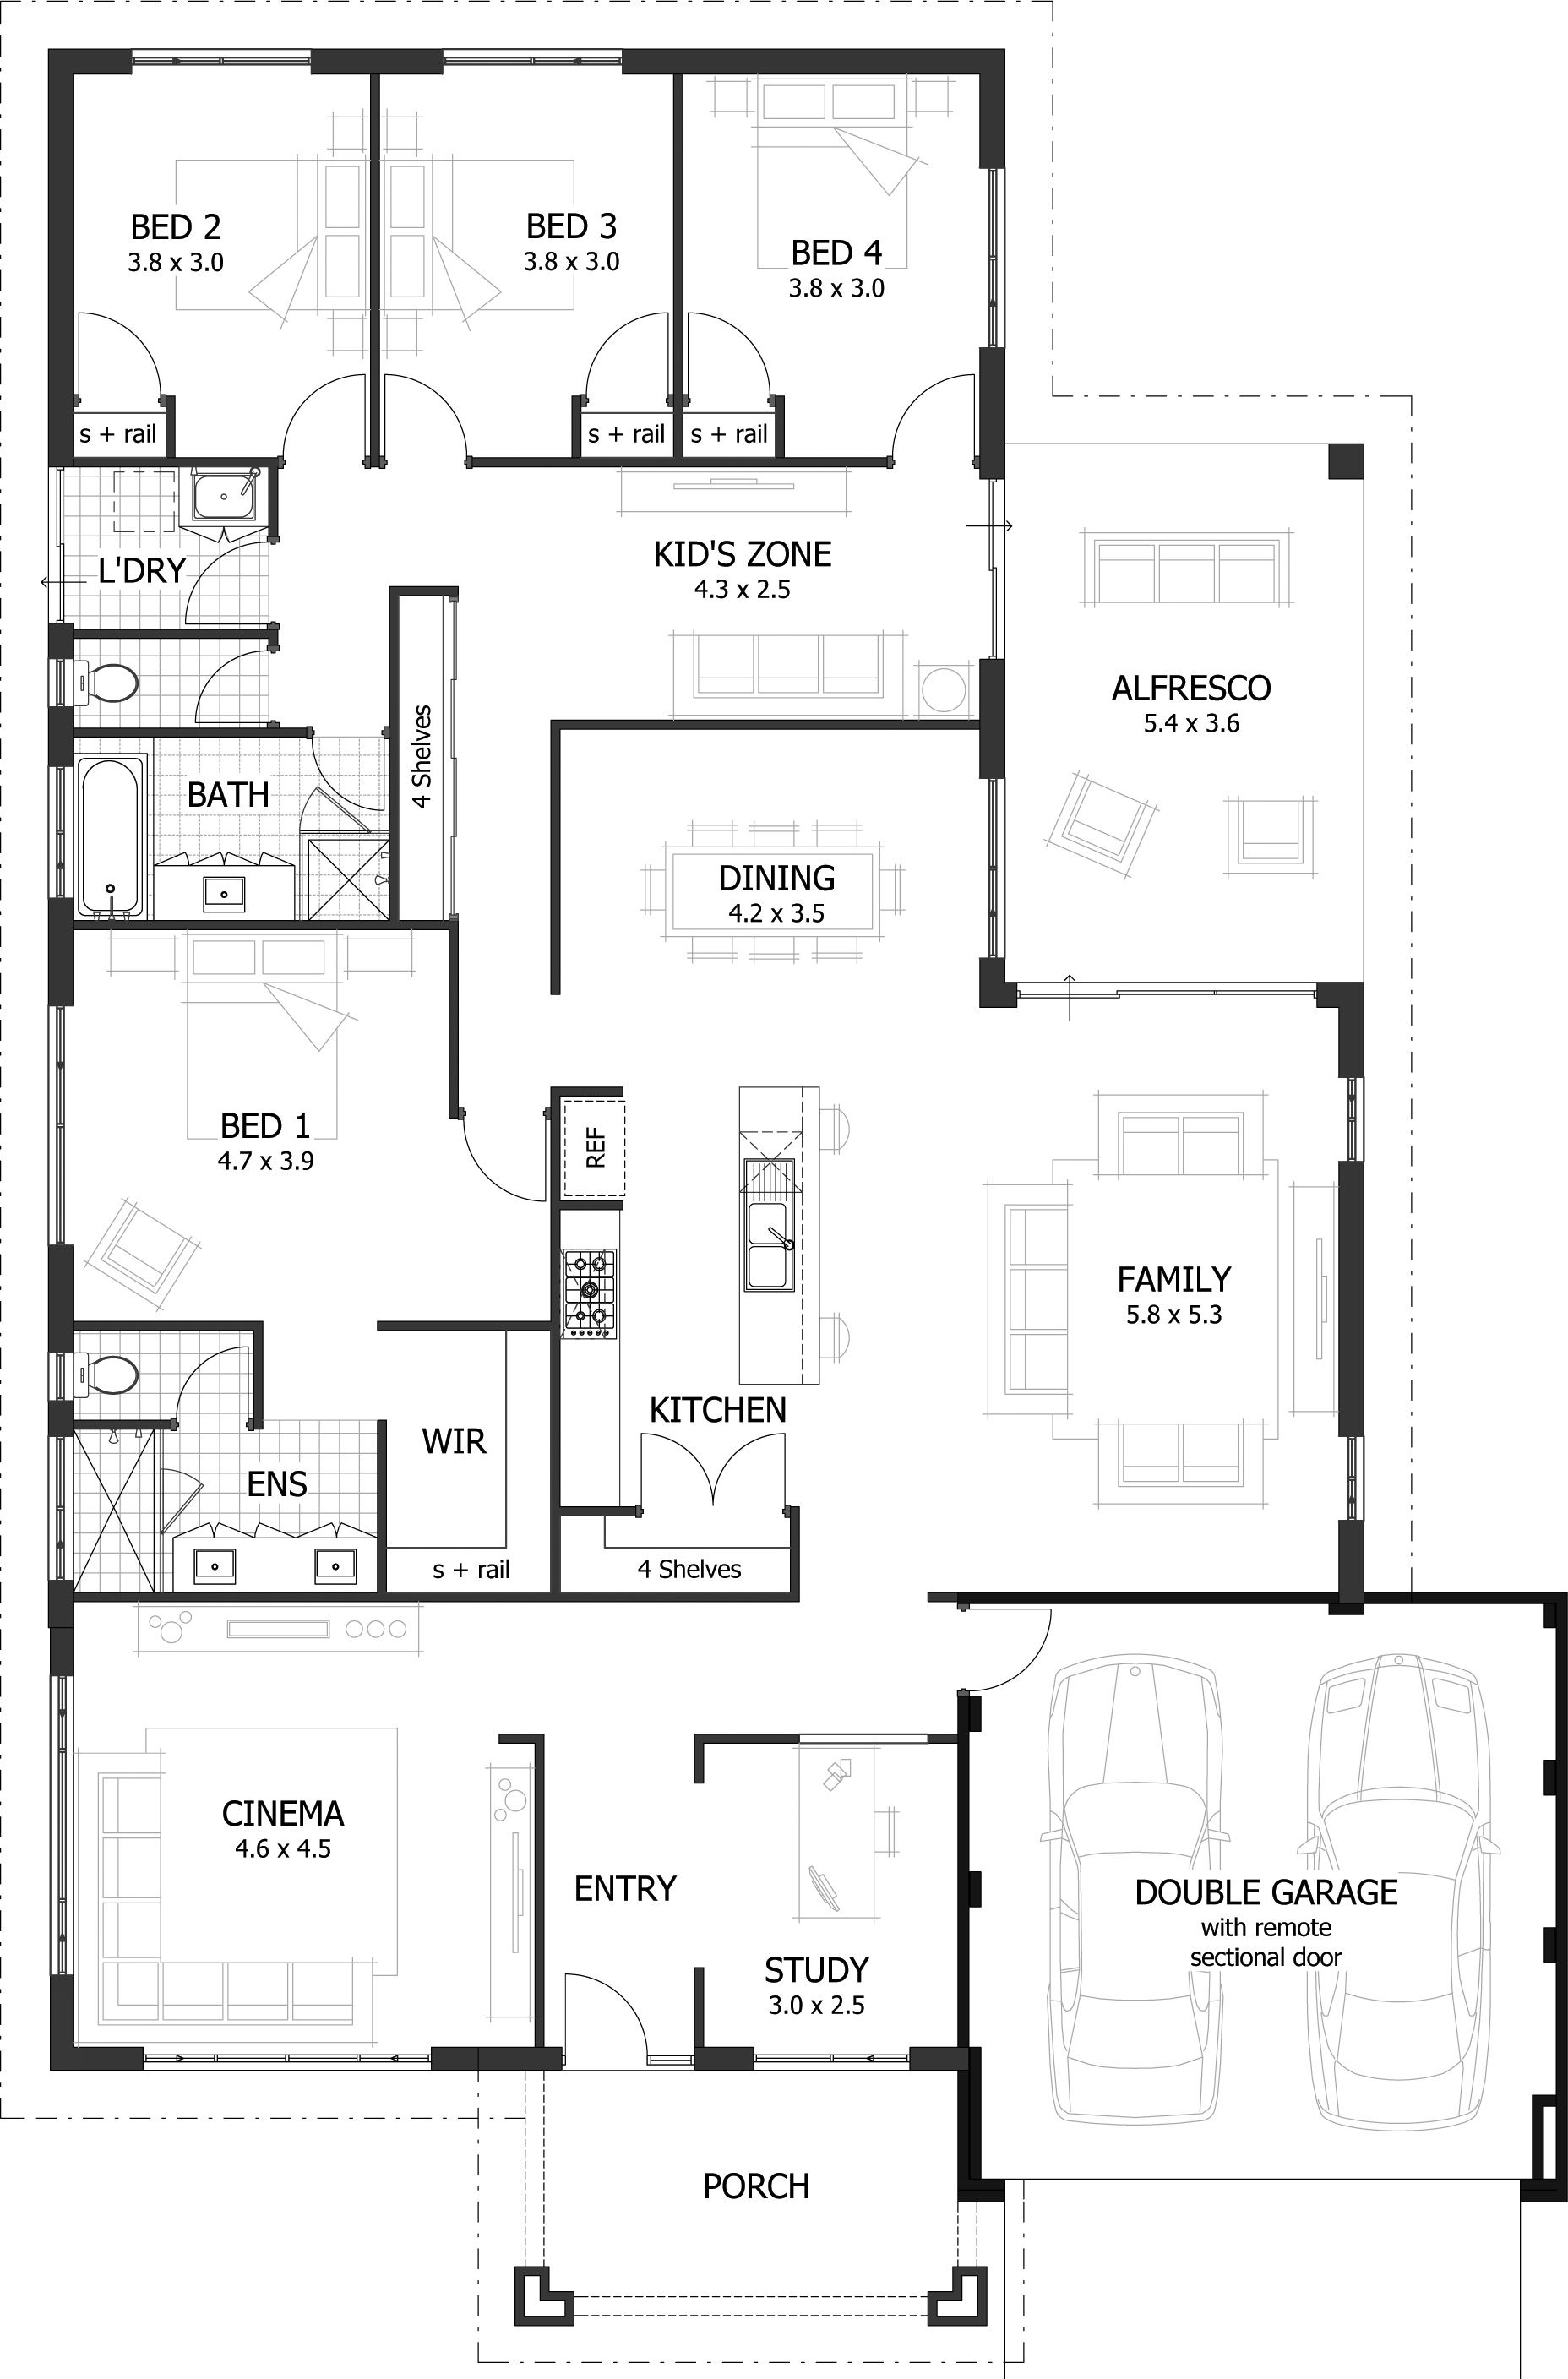 4 Bedroom House Plans Home Designs 4 Bedroom House